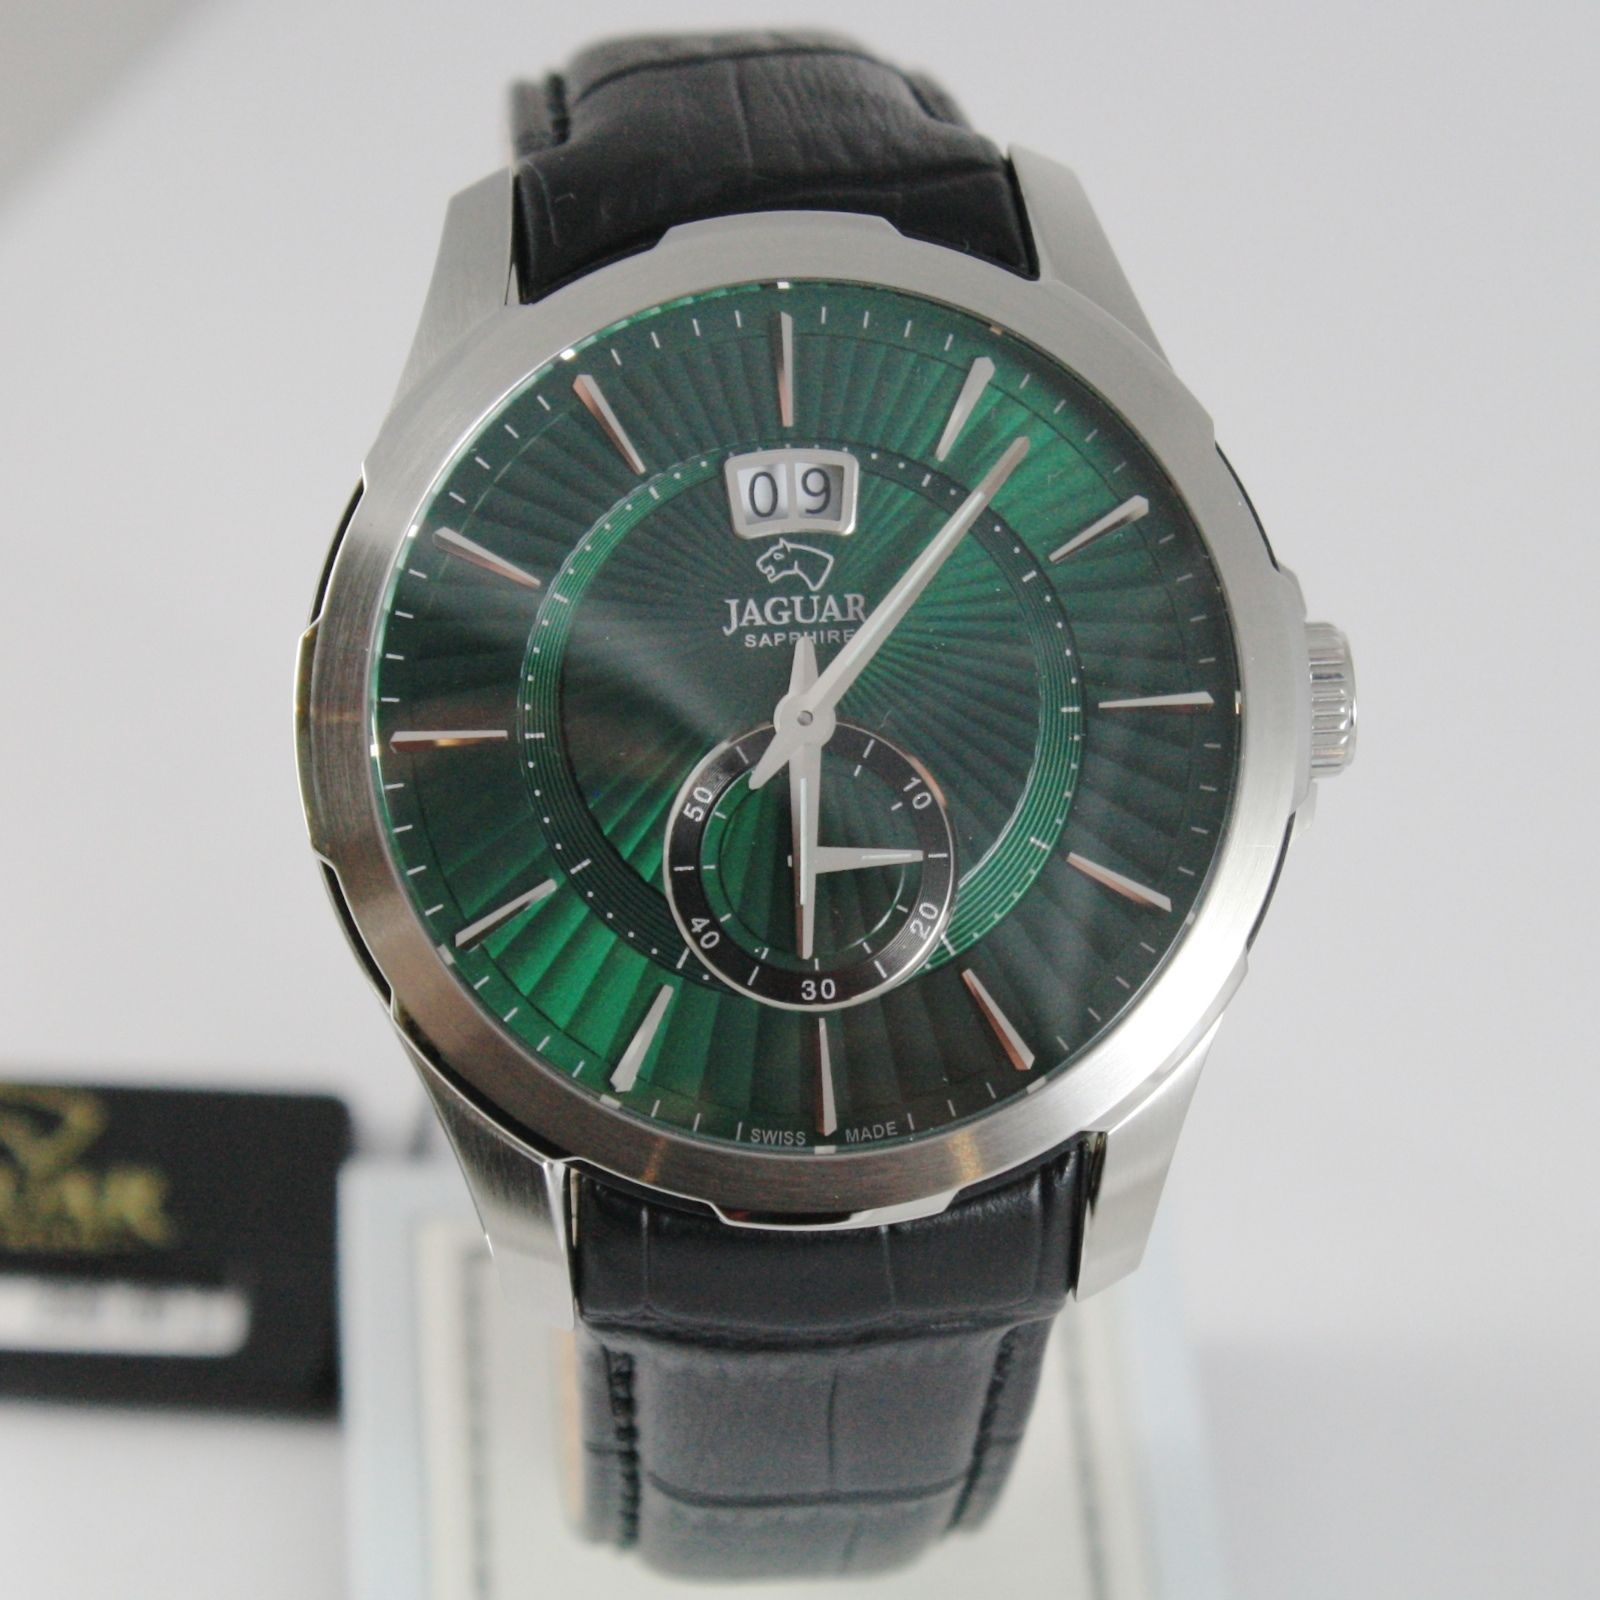 JAGUAR WATCH, SWISS MADE, SAPPHIRE CRYSTAL, GREEN, 44 MM CASE BLACK LEATHER BAND